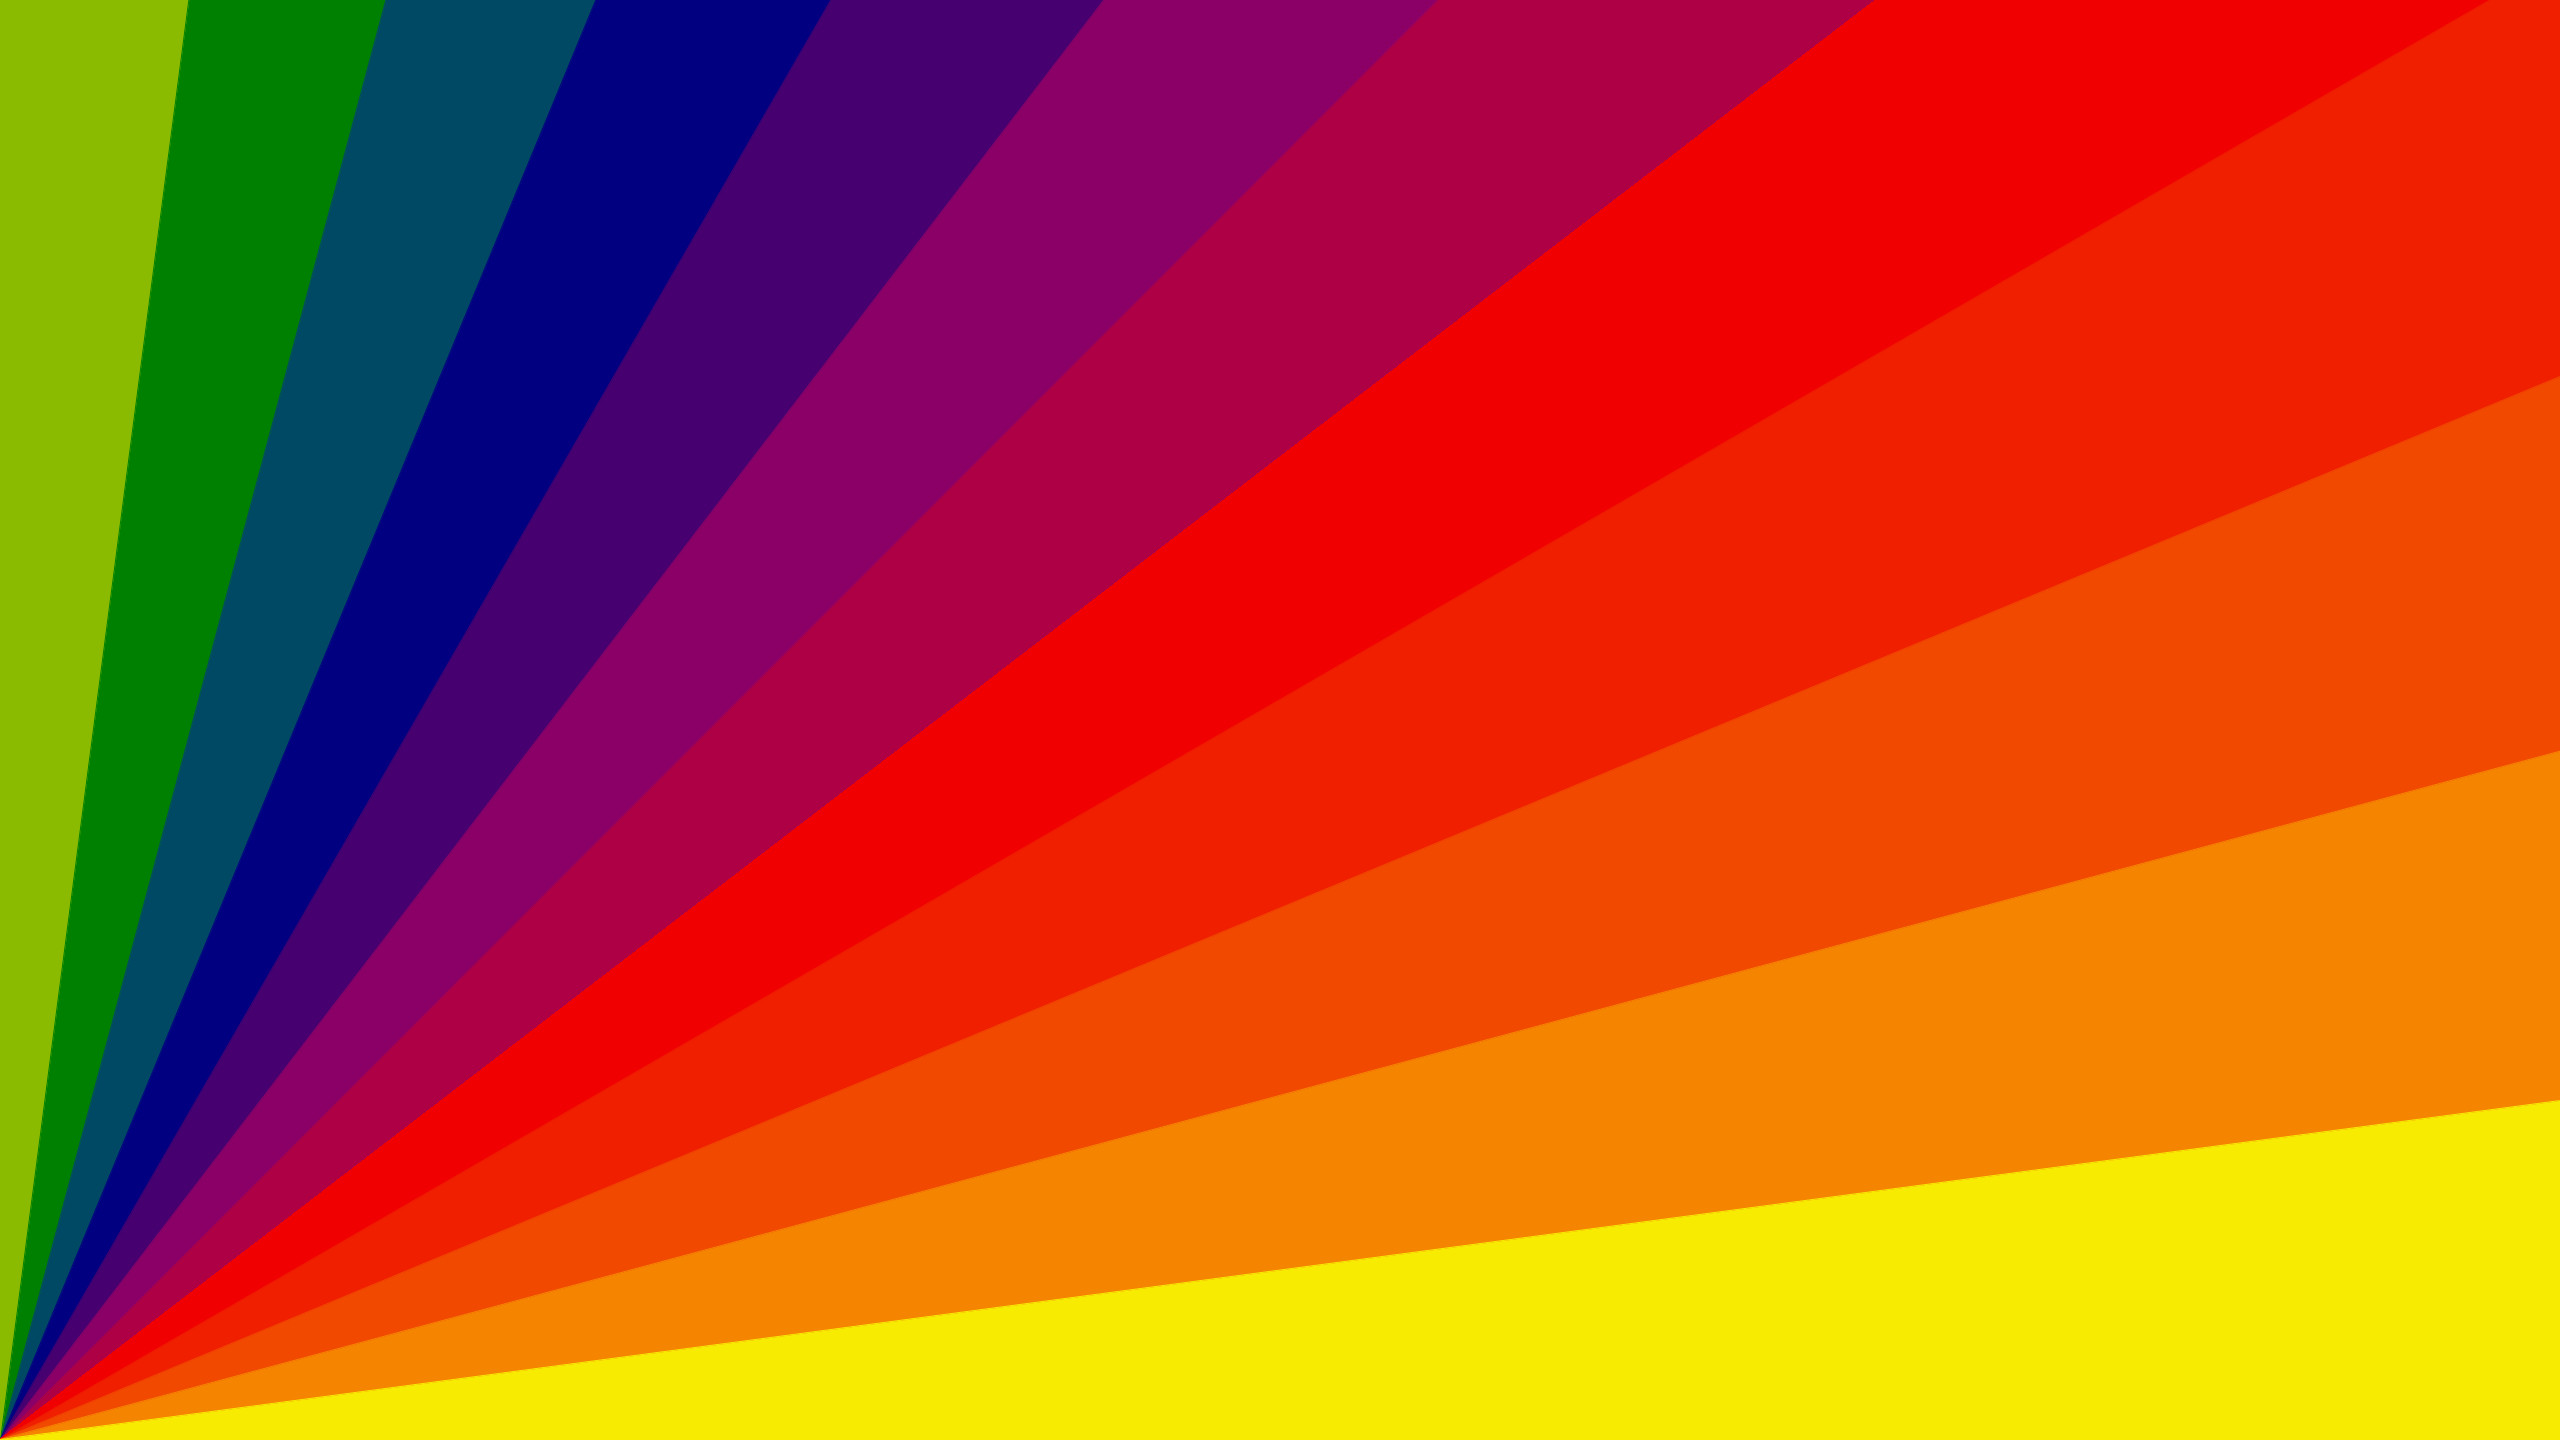 Res: 2560x1440, Abstract Rainbow image